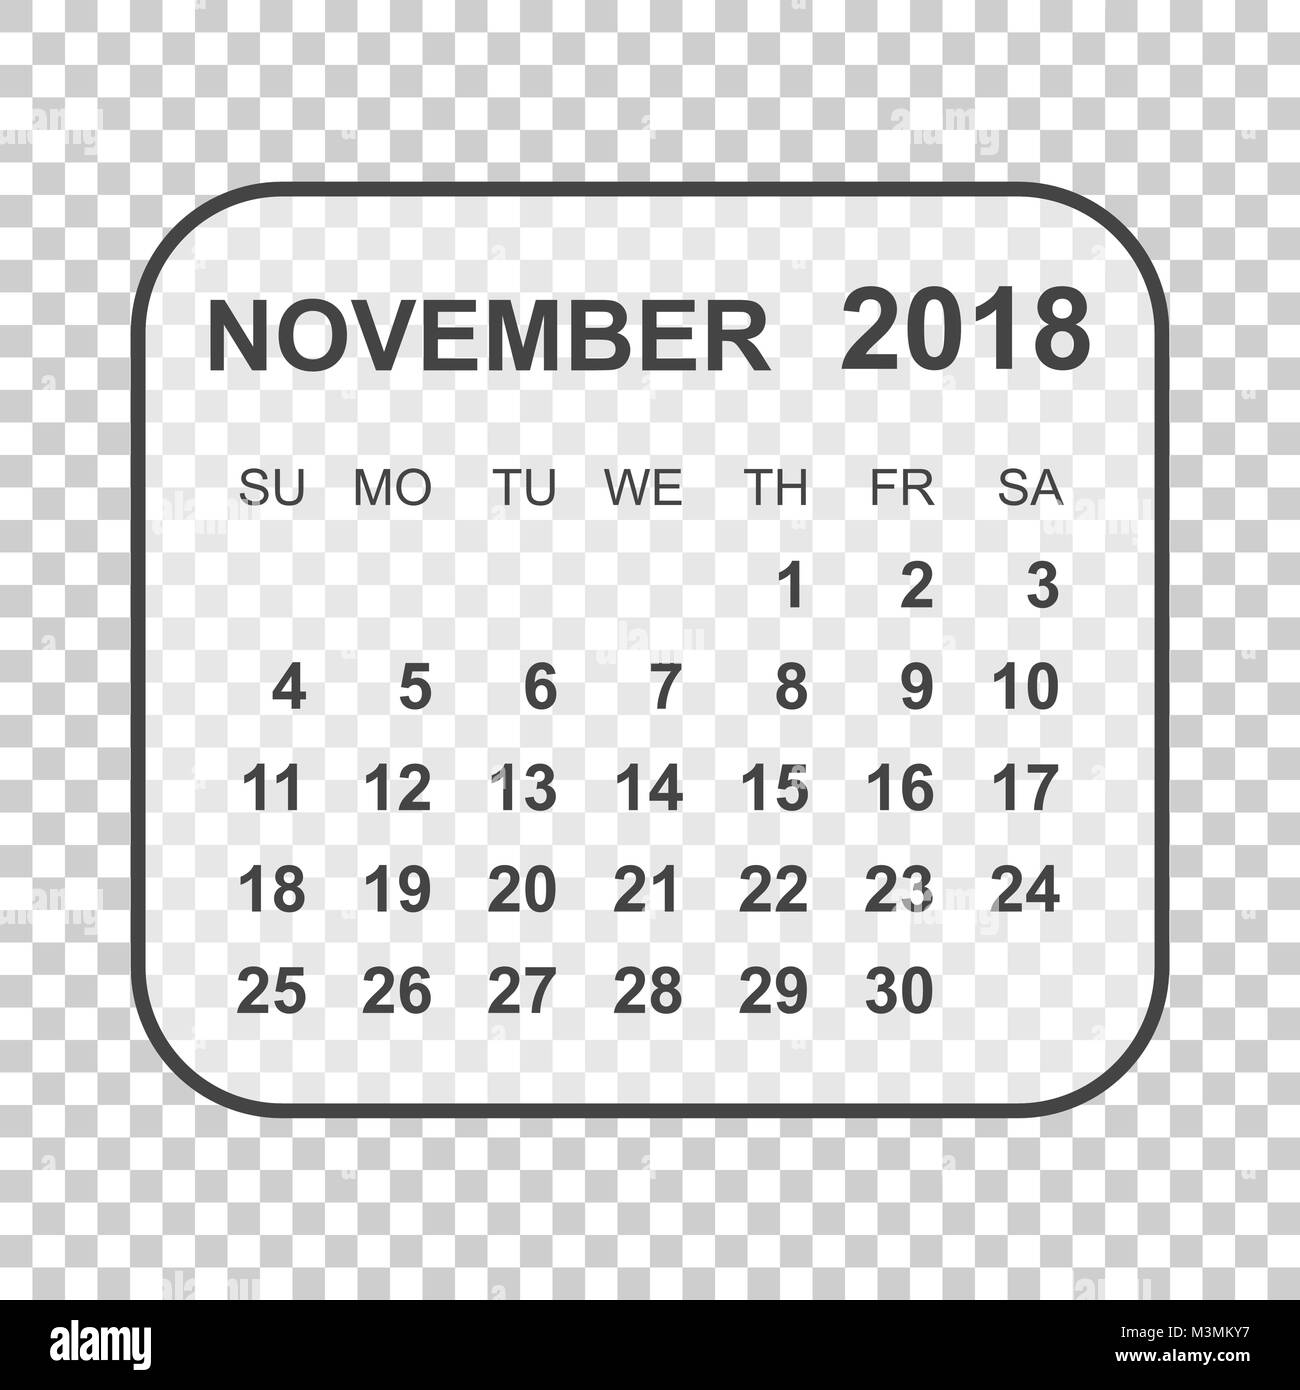 november 2018 calendar calendar planner design template week starts on sunday business vector illustration